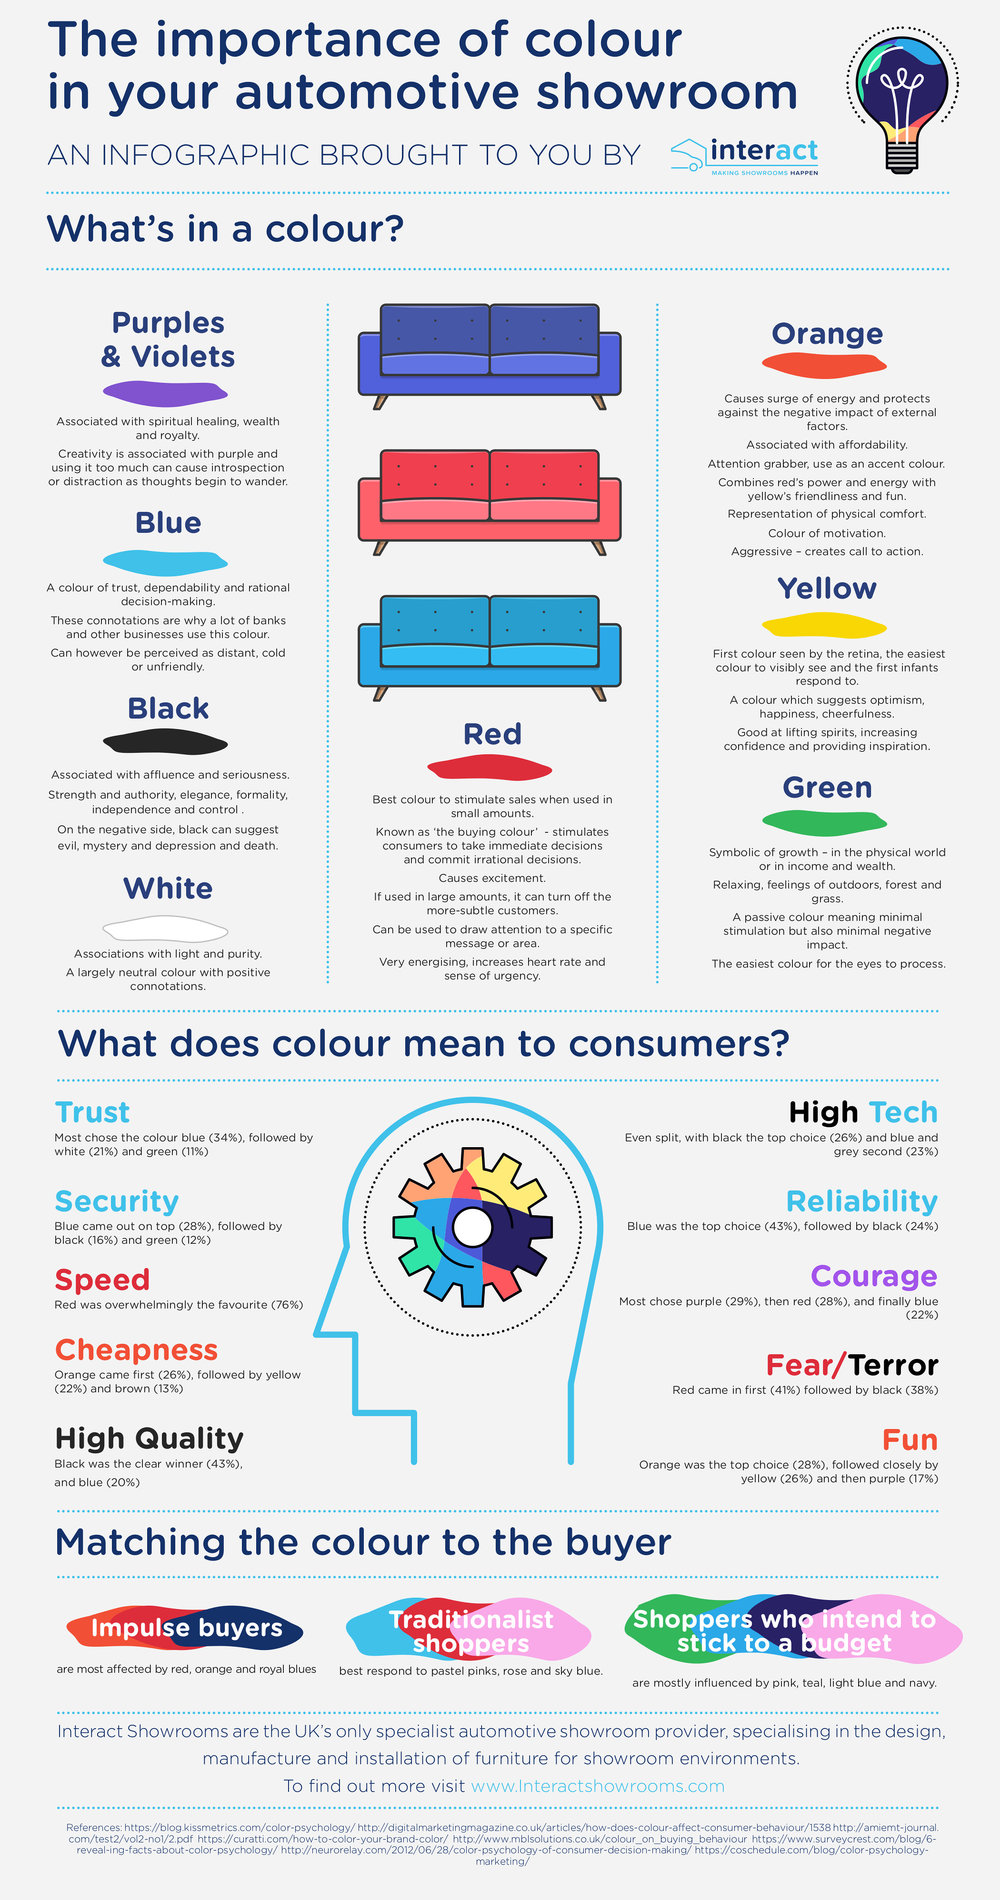 Importance of colour_Infographic.jpg